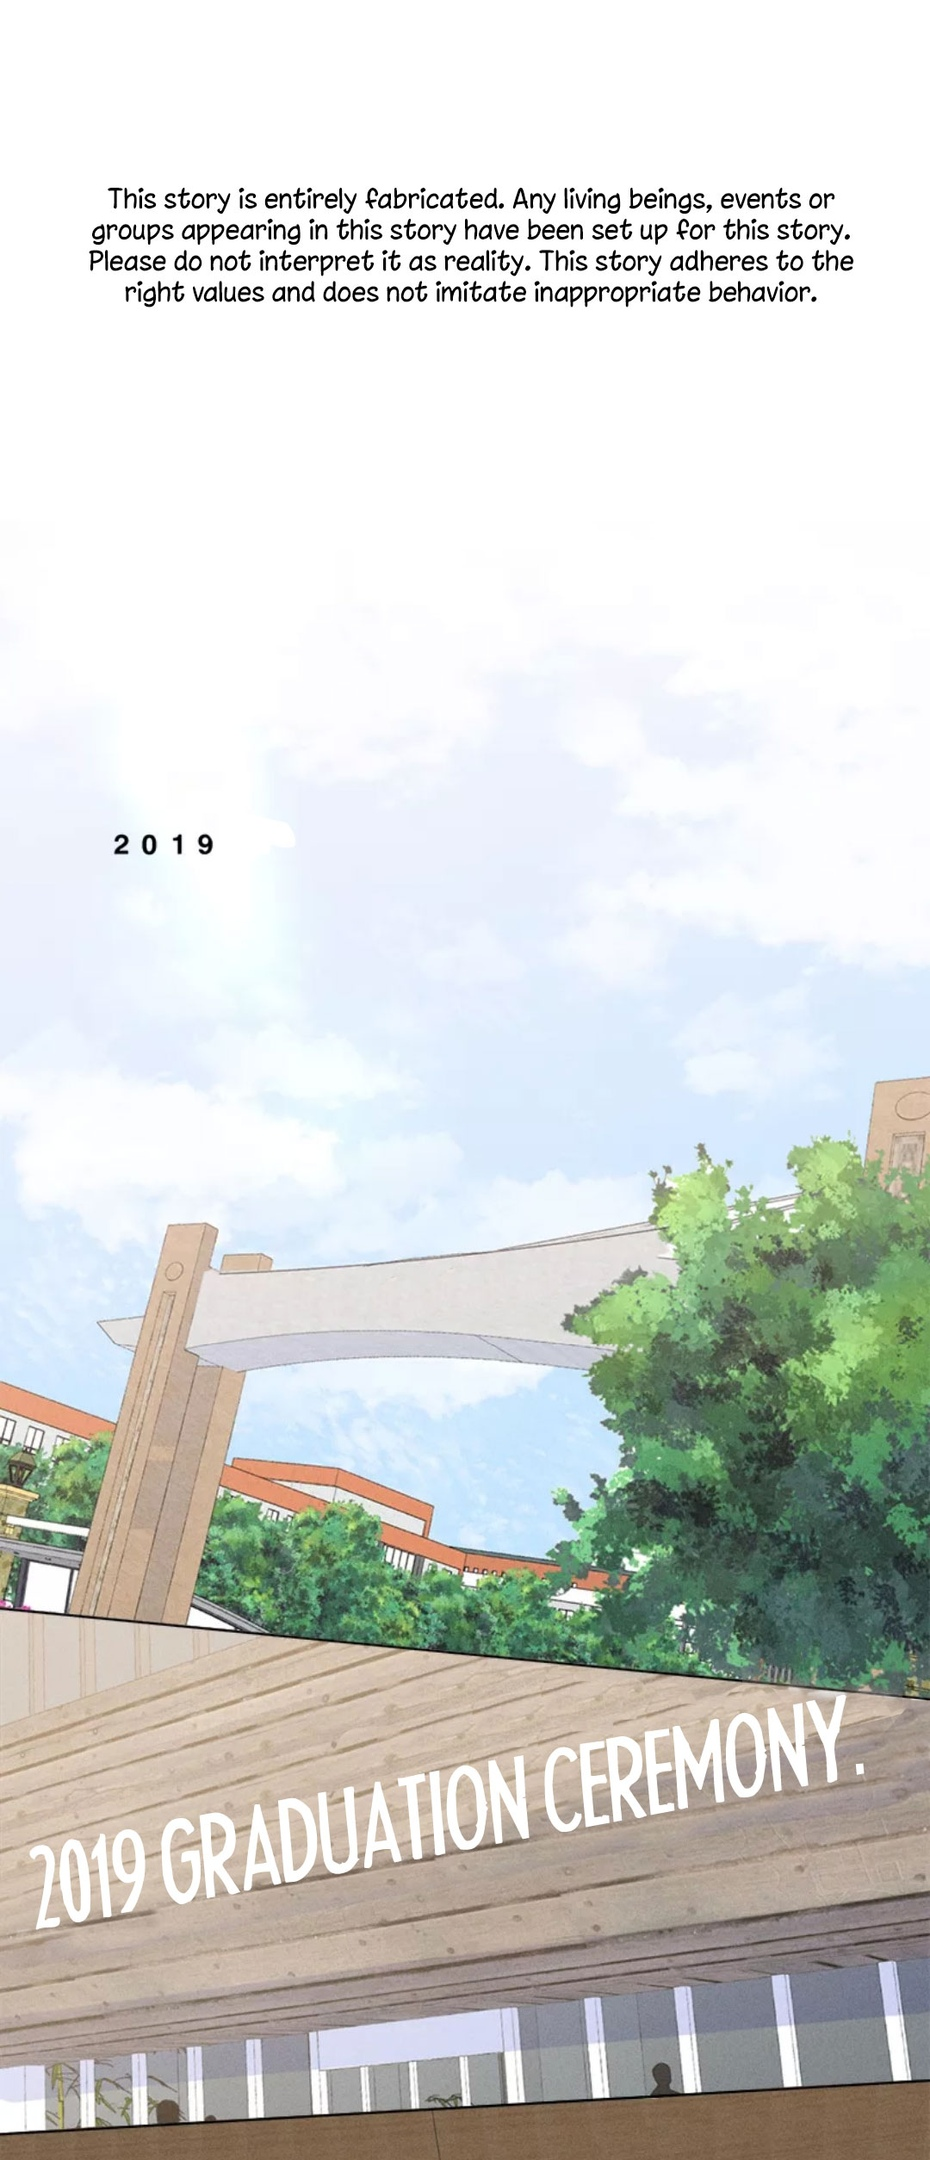 Here U are, Chapter 137, image #4